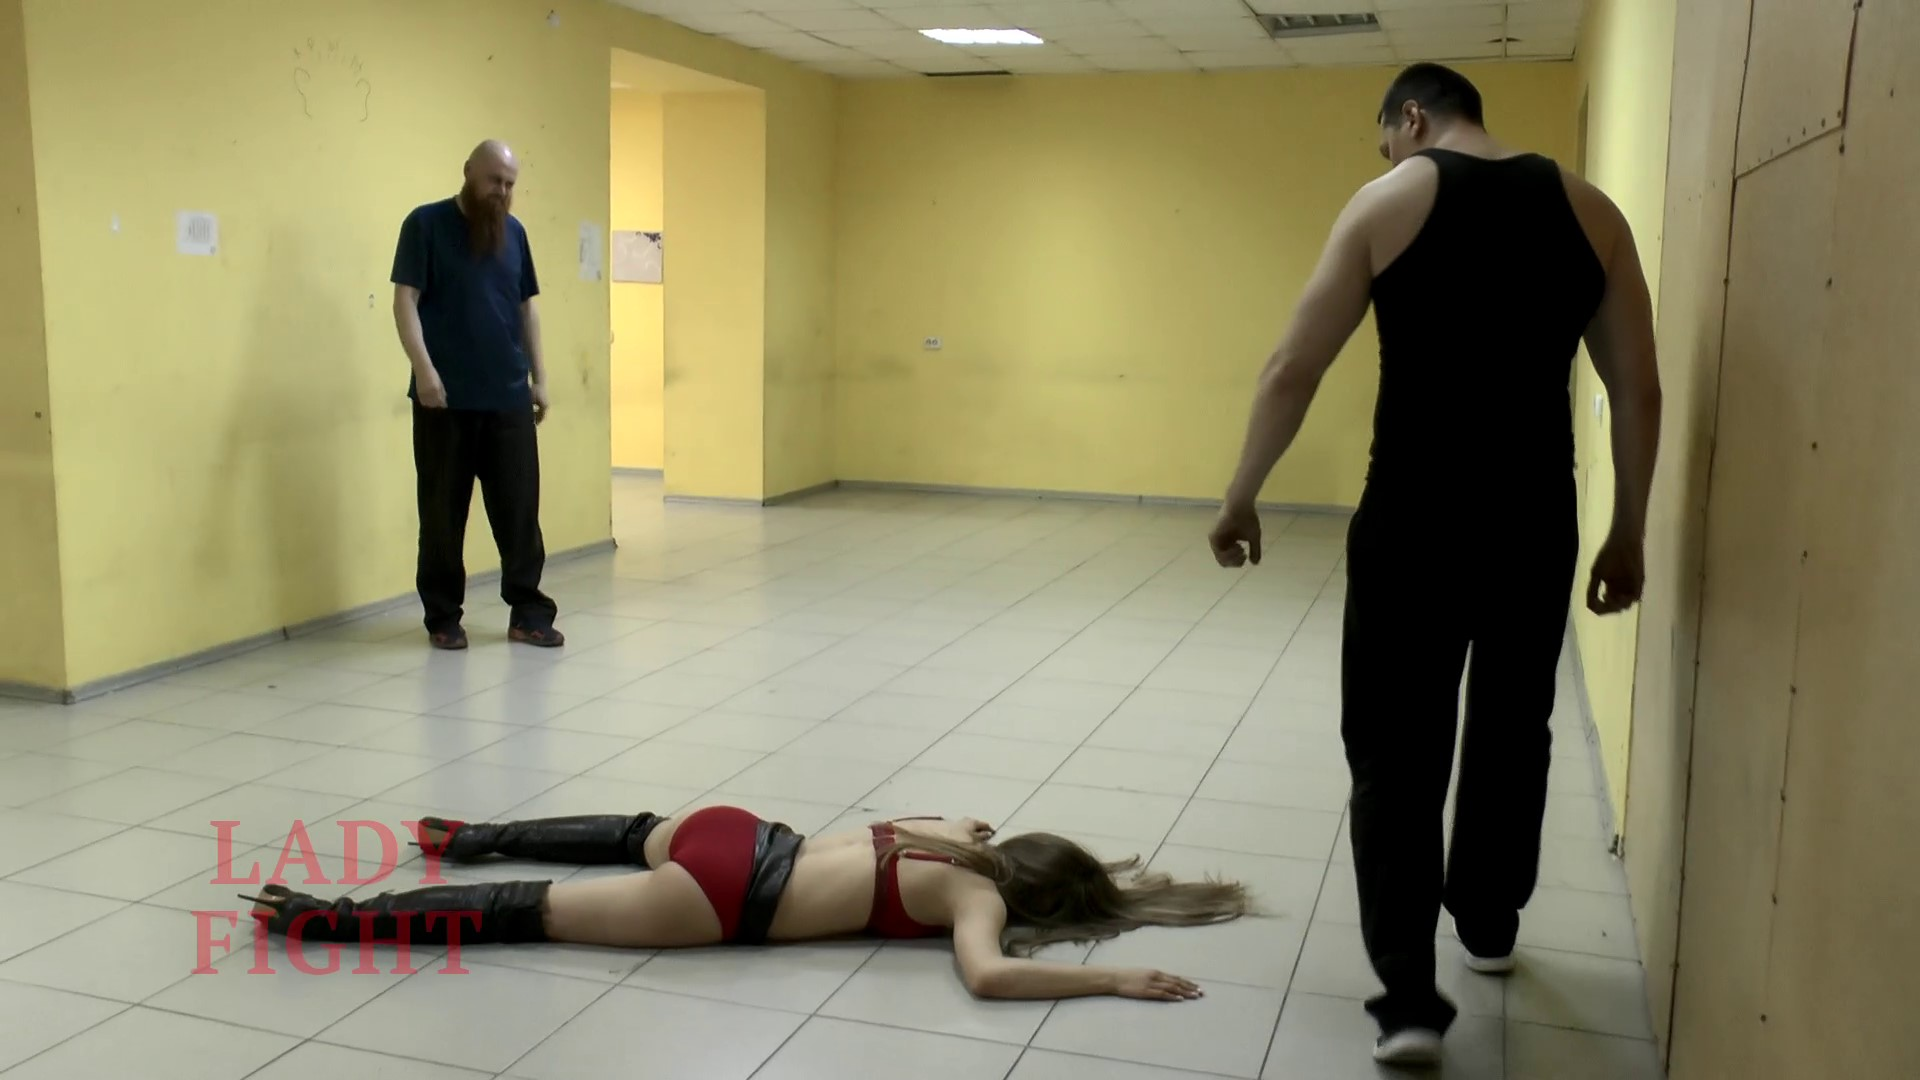 LADYFIGHT-Deadly-Wrestling-For-Lora-126